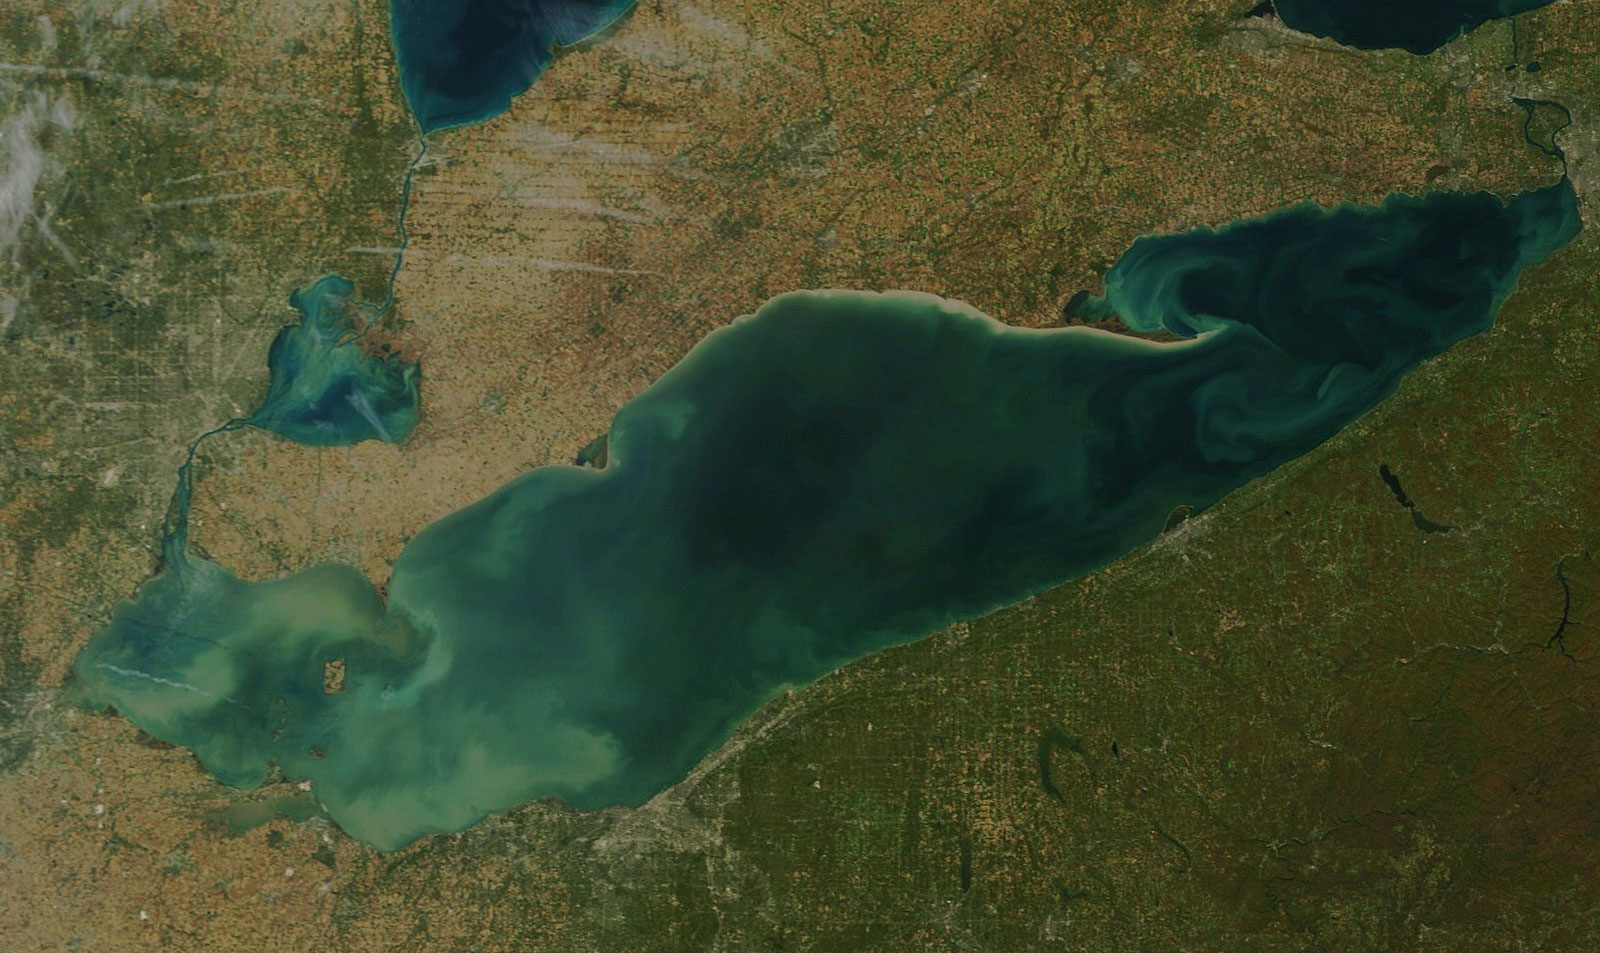 Algae in Lake Erie in 2015